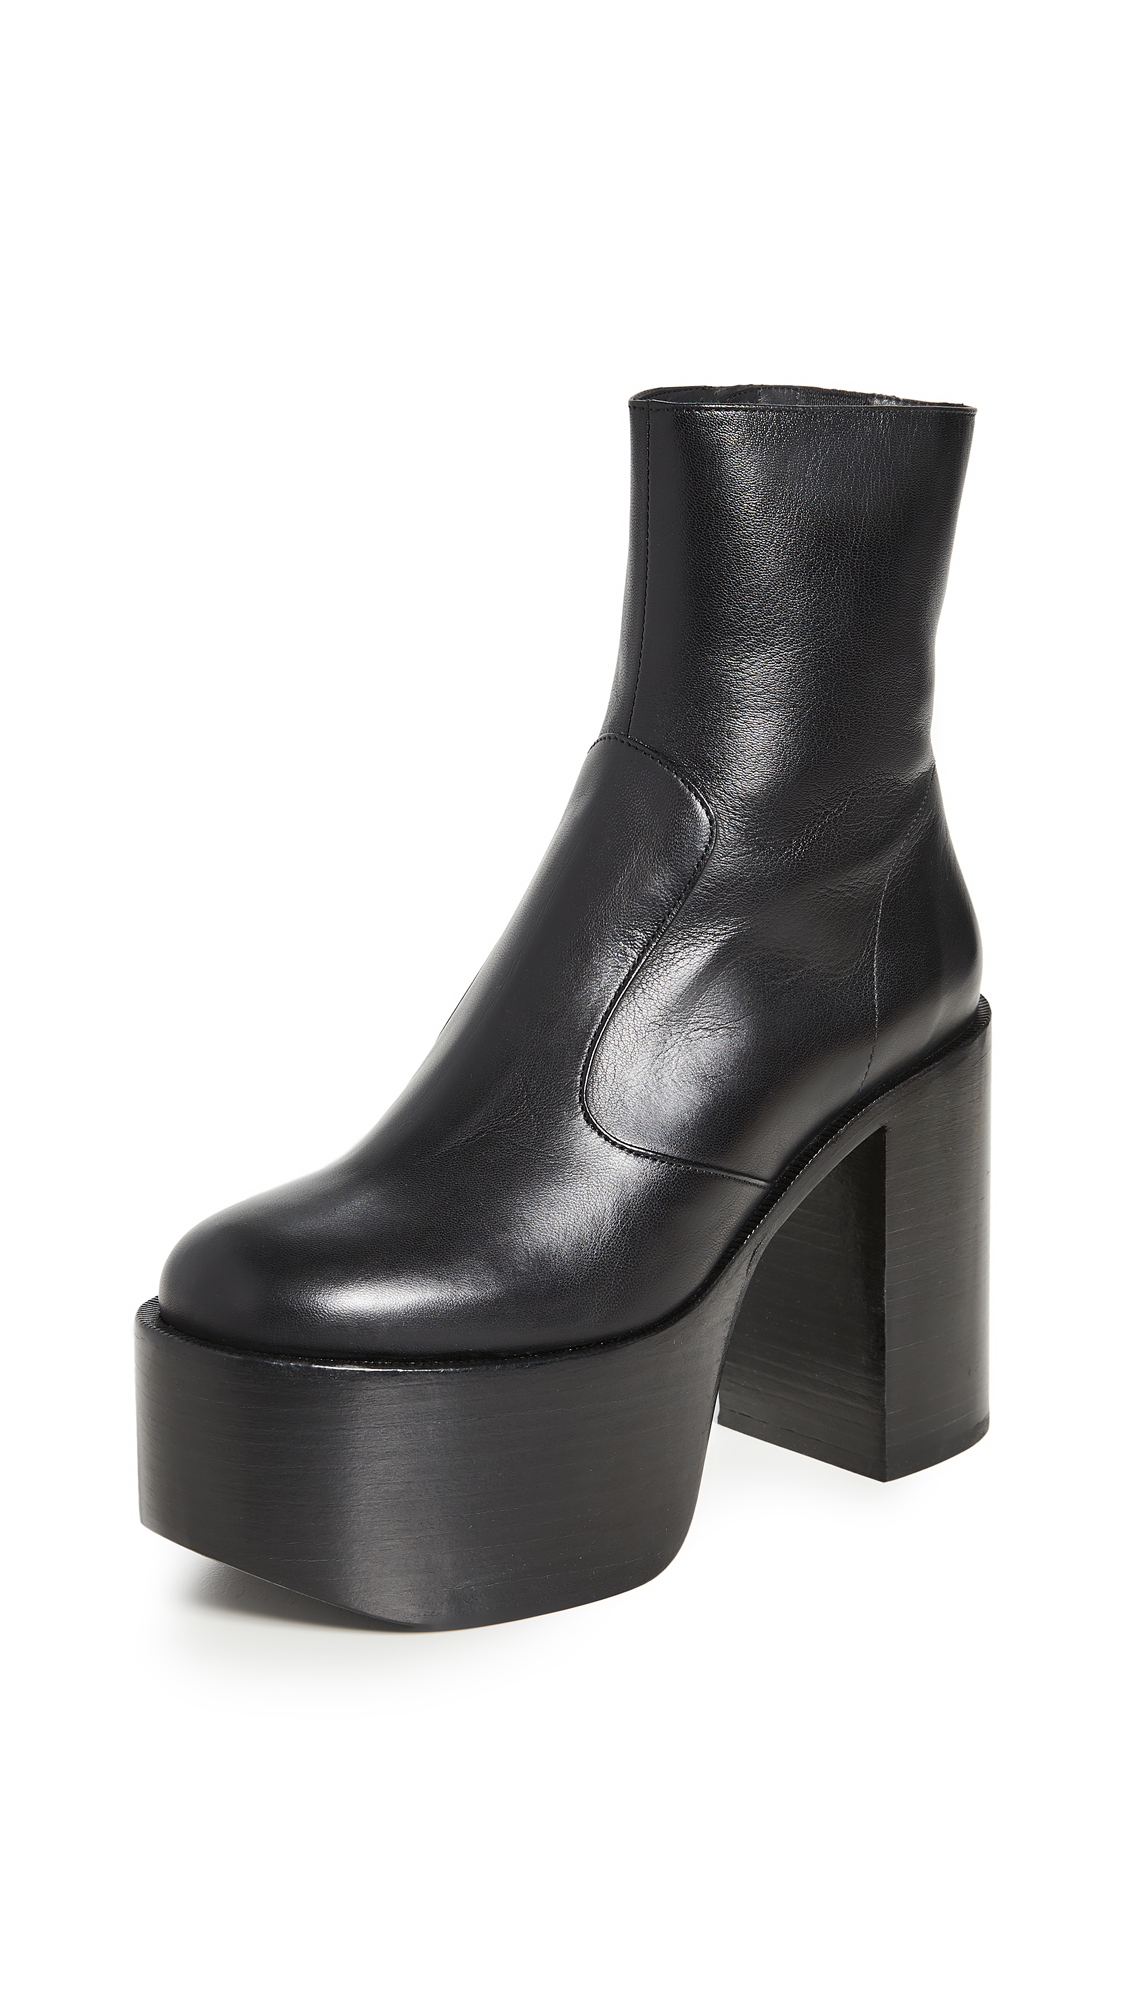 Simon Miller High Raid Booties - 30% Off Sale